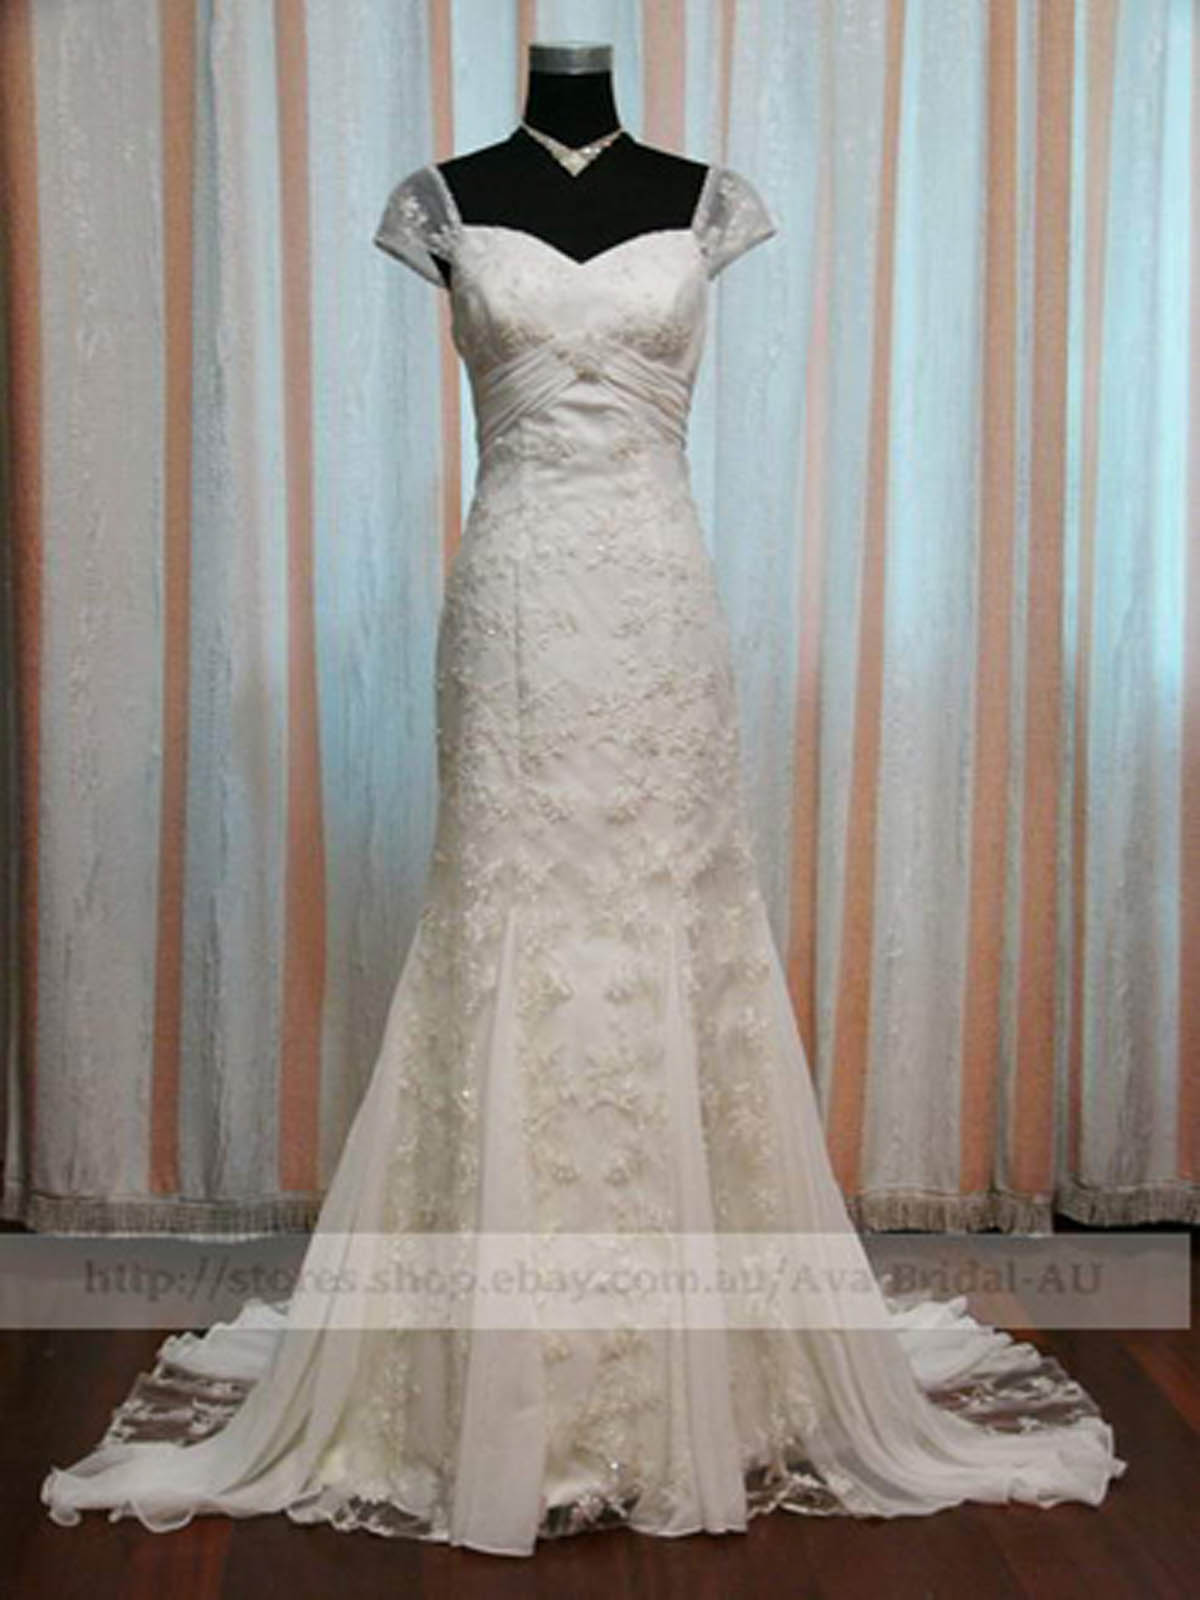 Vintage Inspired Wedding Dress - Heidi - Front